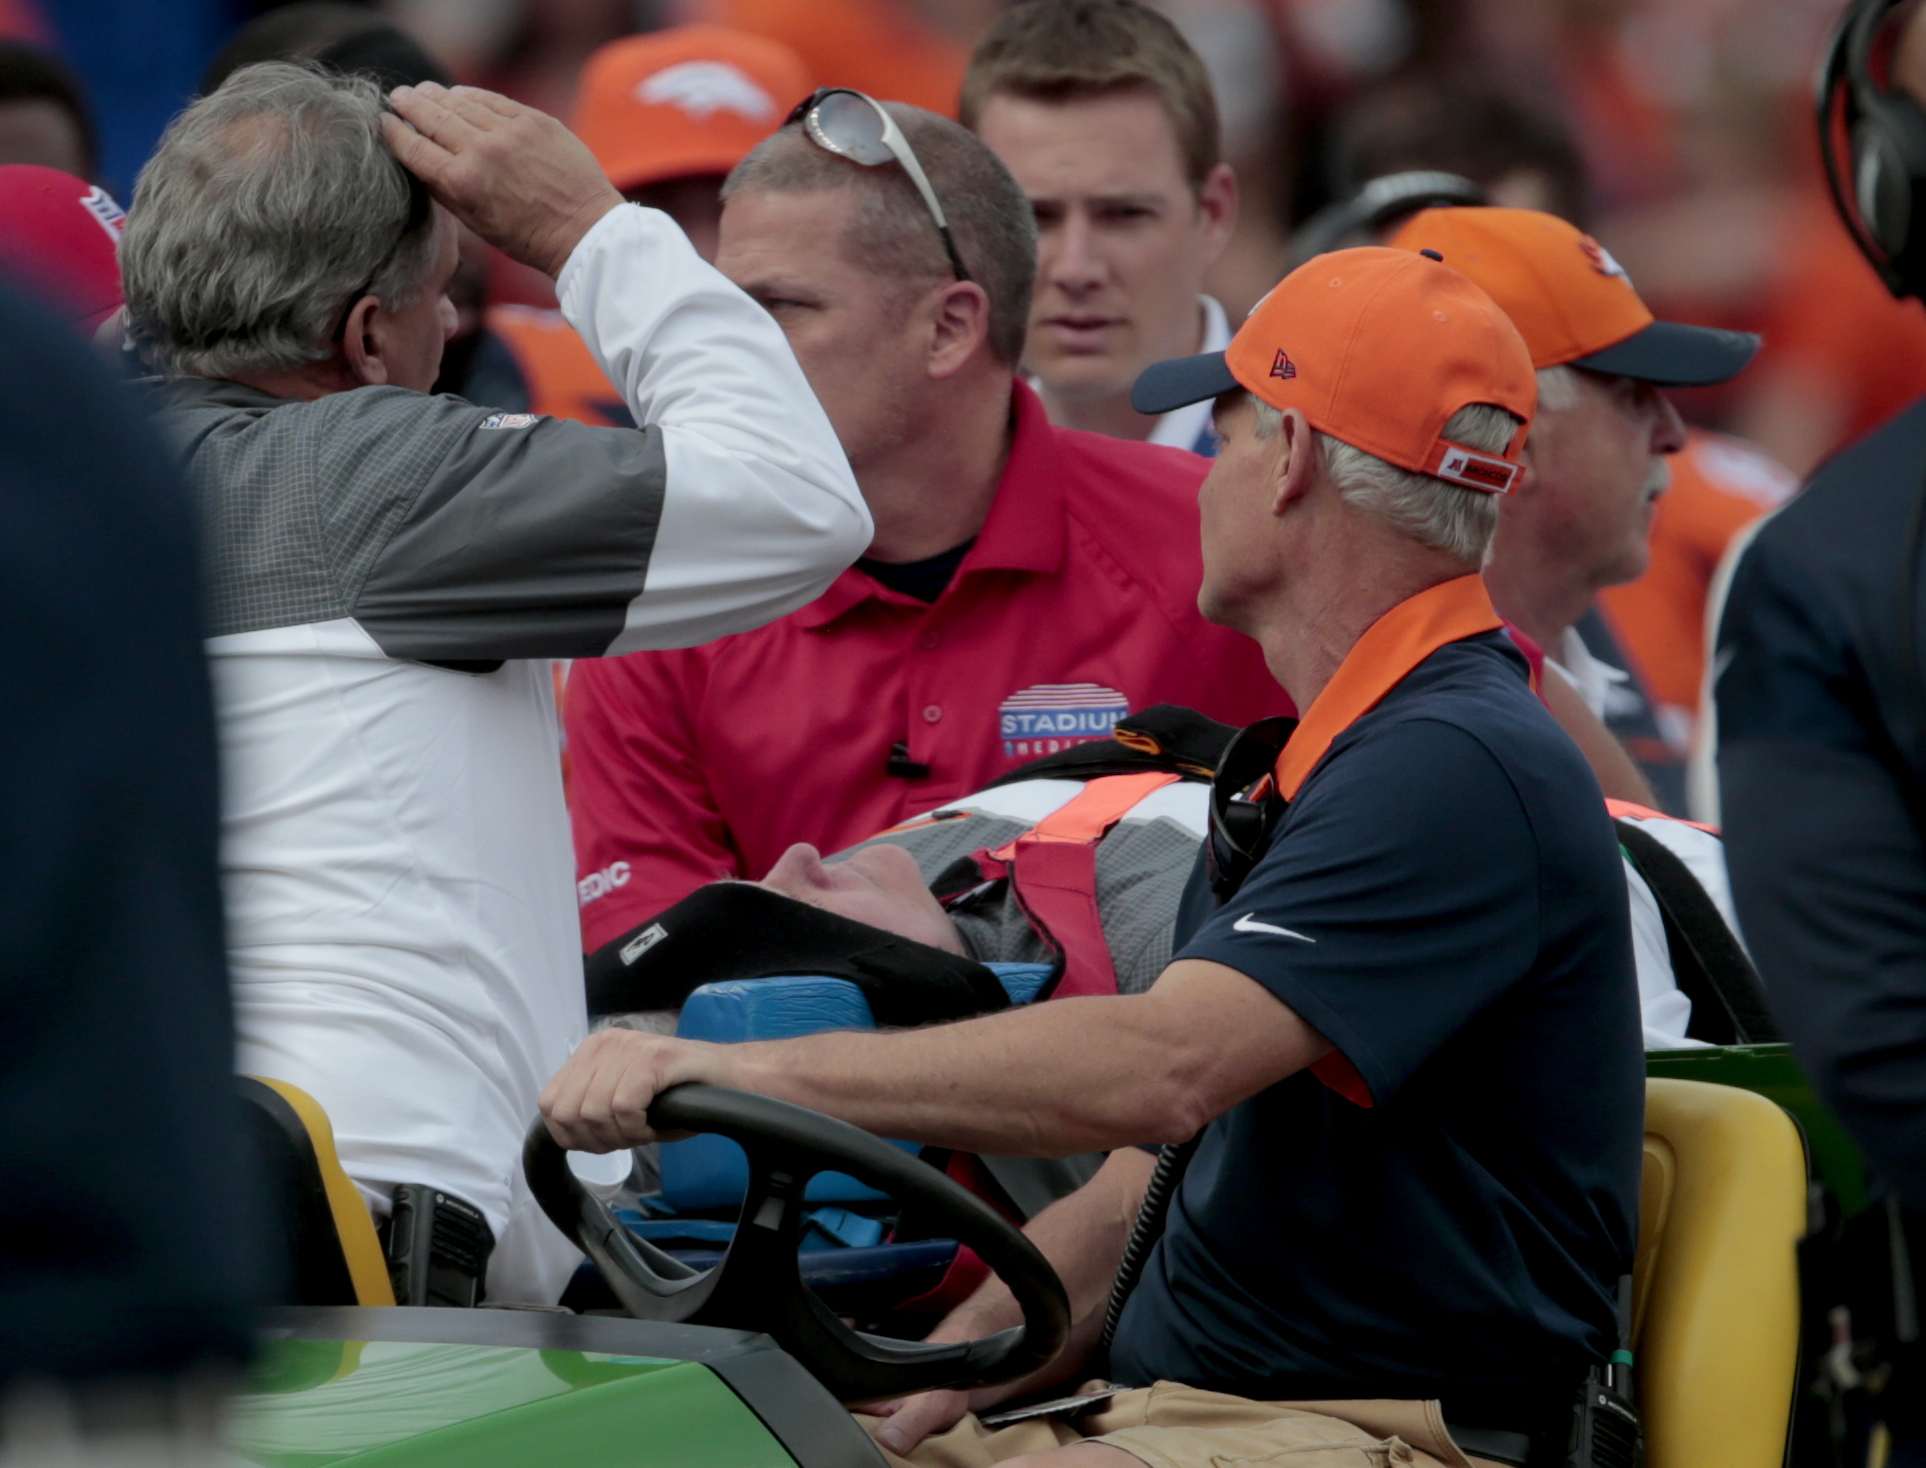 FILE - In this Oct. 30, 2016, file photo, Denver Broncos offensive coordinator Wade Phillips is carted off the field after being run into by a player while on standing on the sideline during the team's NFL football game against the San Diego Chargers in D